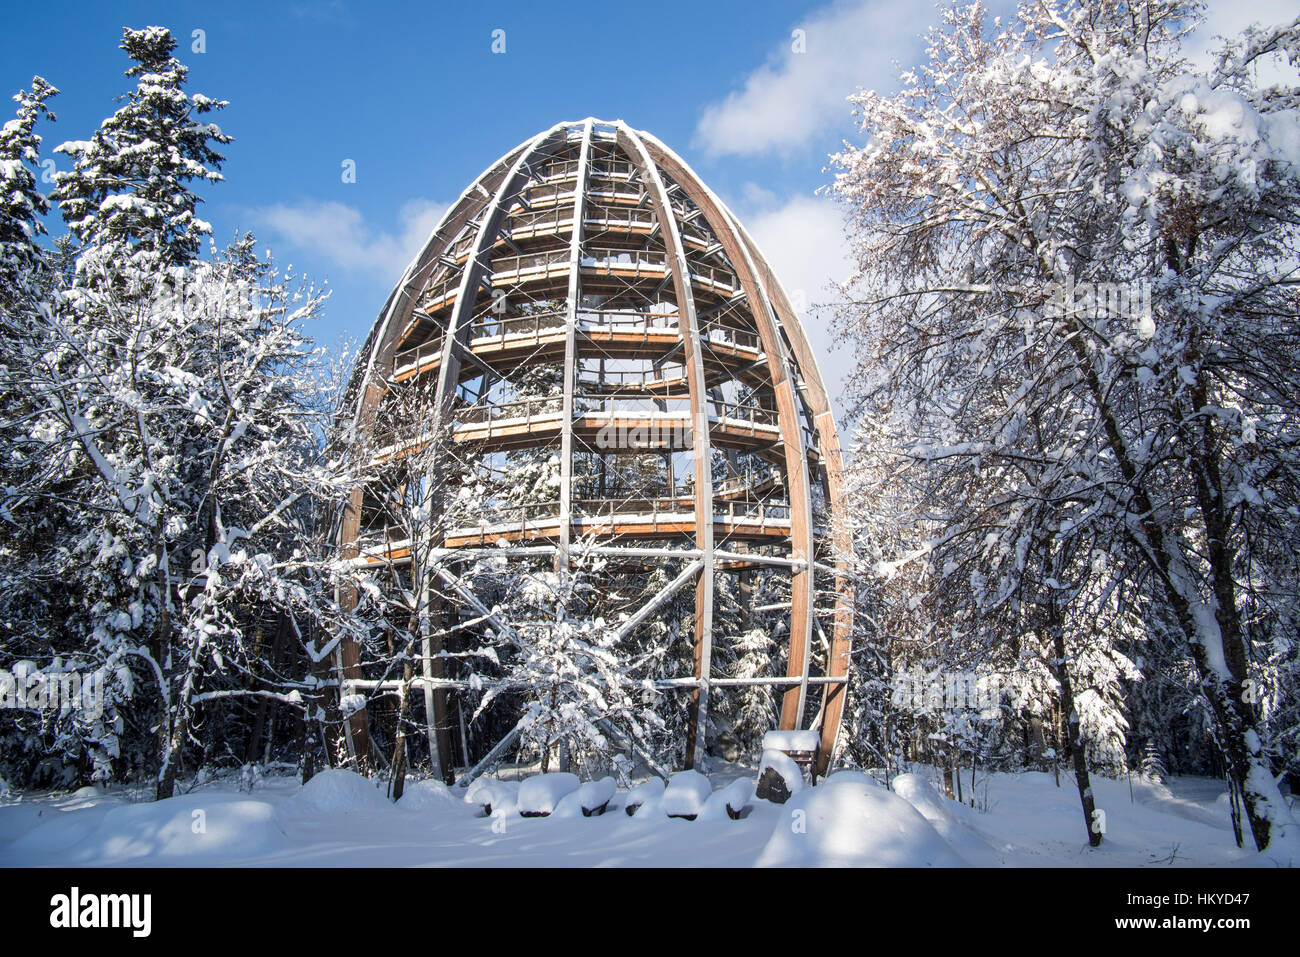 Baumwipfelpfad in winter, wooden tower construction of the world´s longest tree top walk in the Bavarian Forest Stock Photo